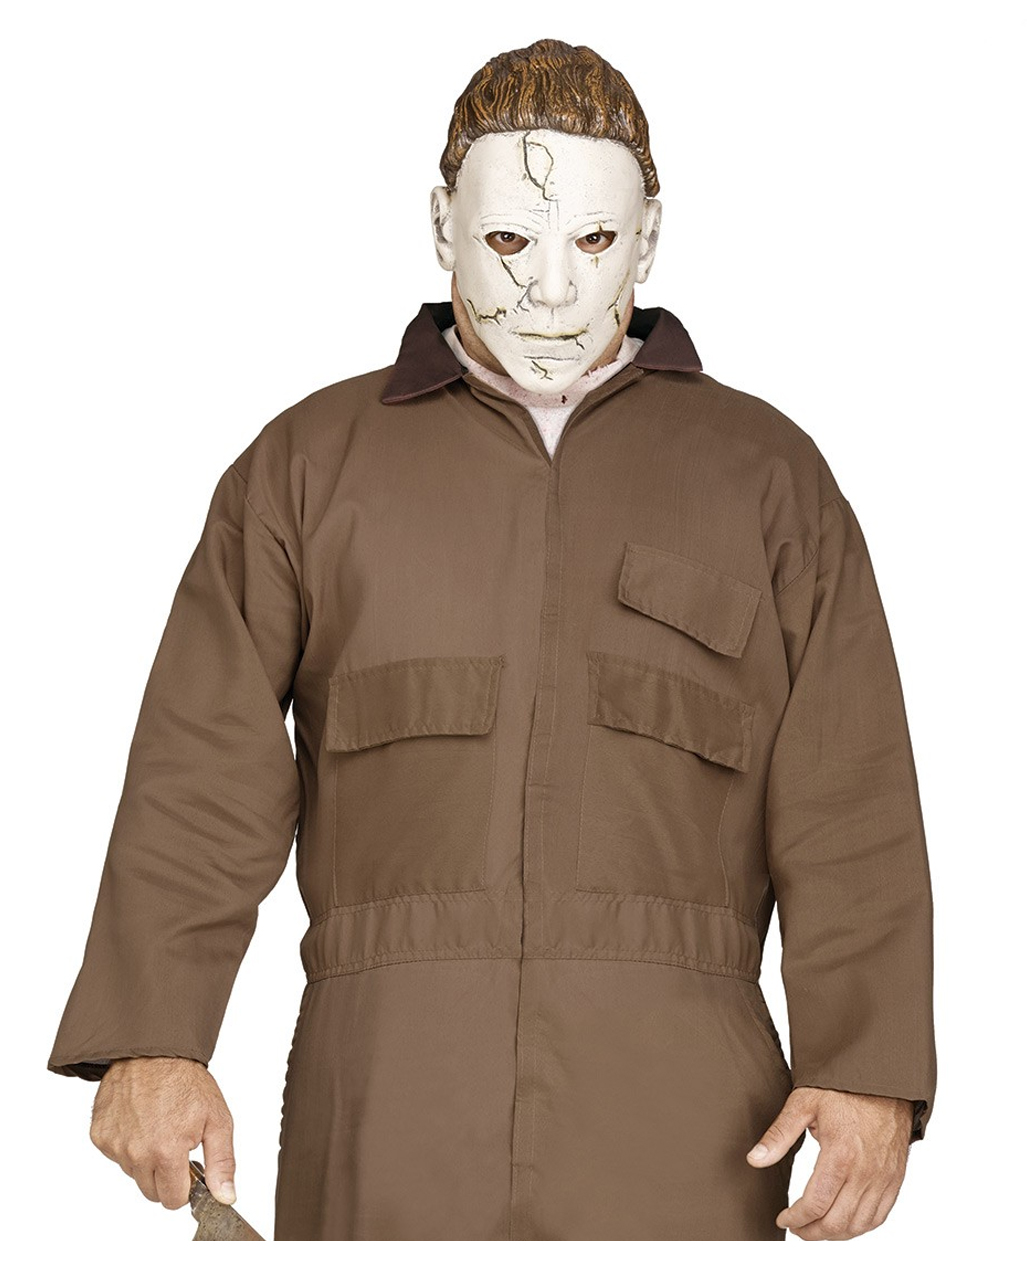 Halloween Michael Myers Costume.Michael Myers Costume With Pvc Mask